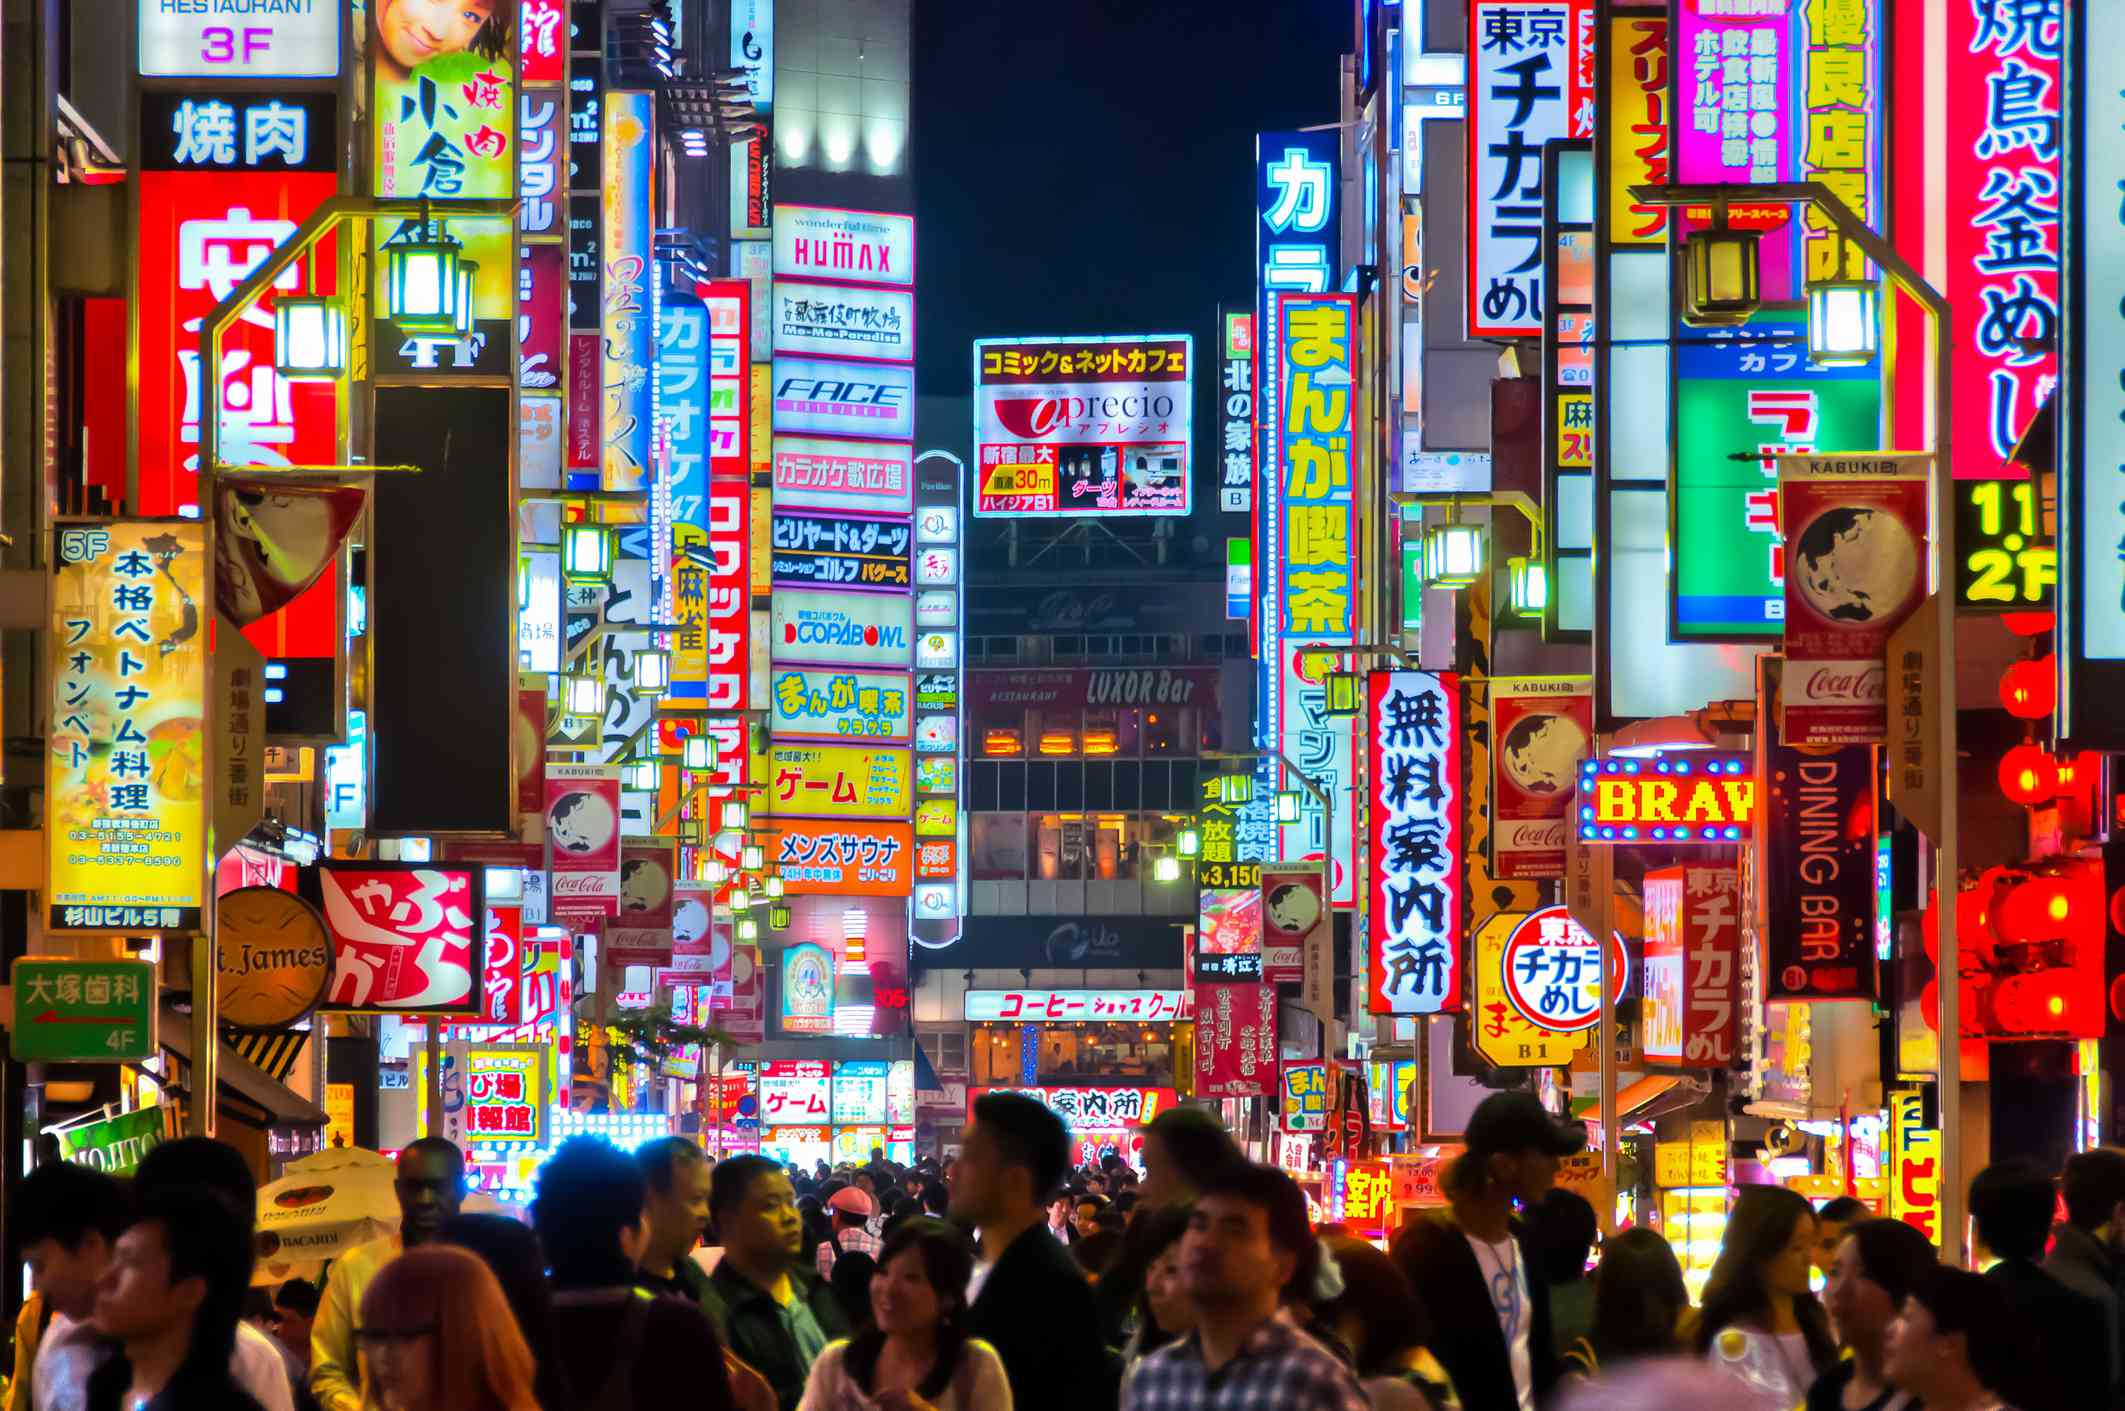 Colorful, illuminated signs in Shinjuku, Tokyo at night with many people walking in the street